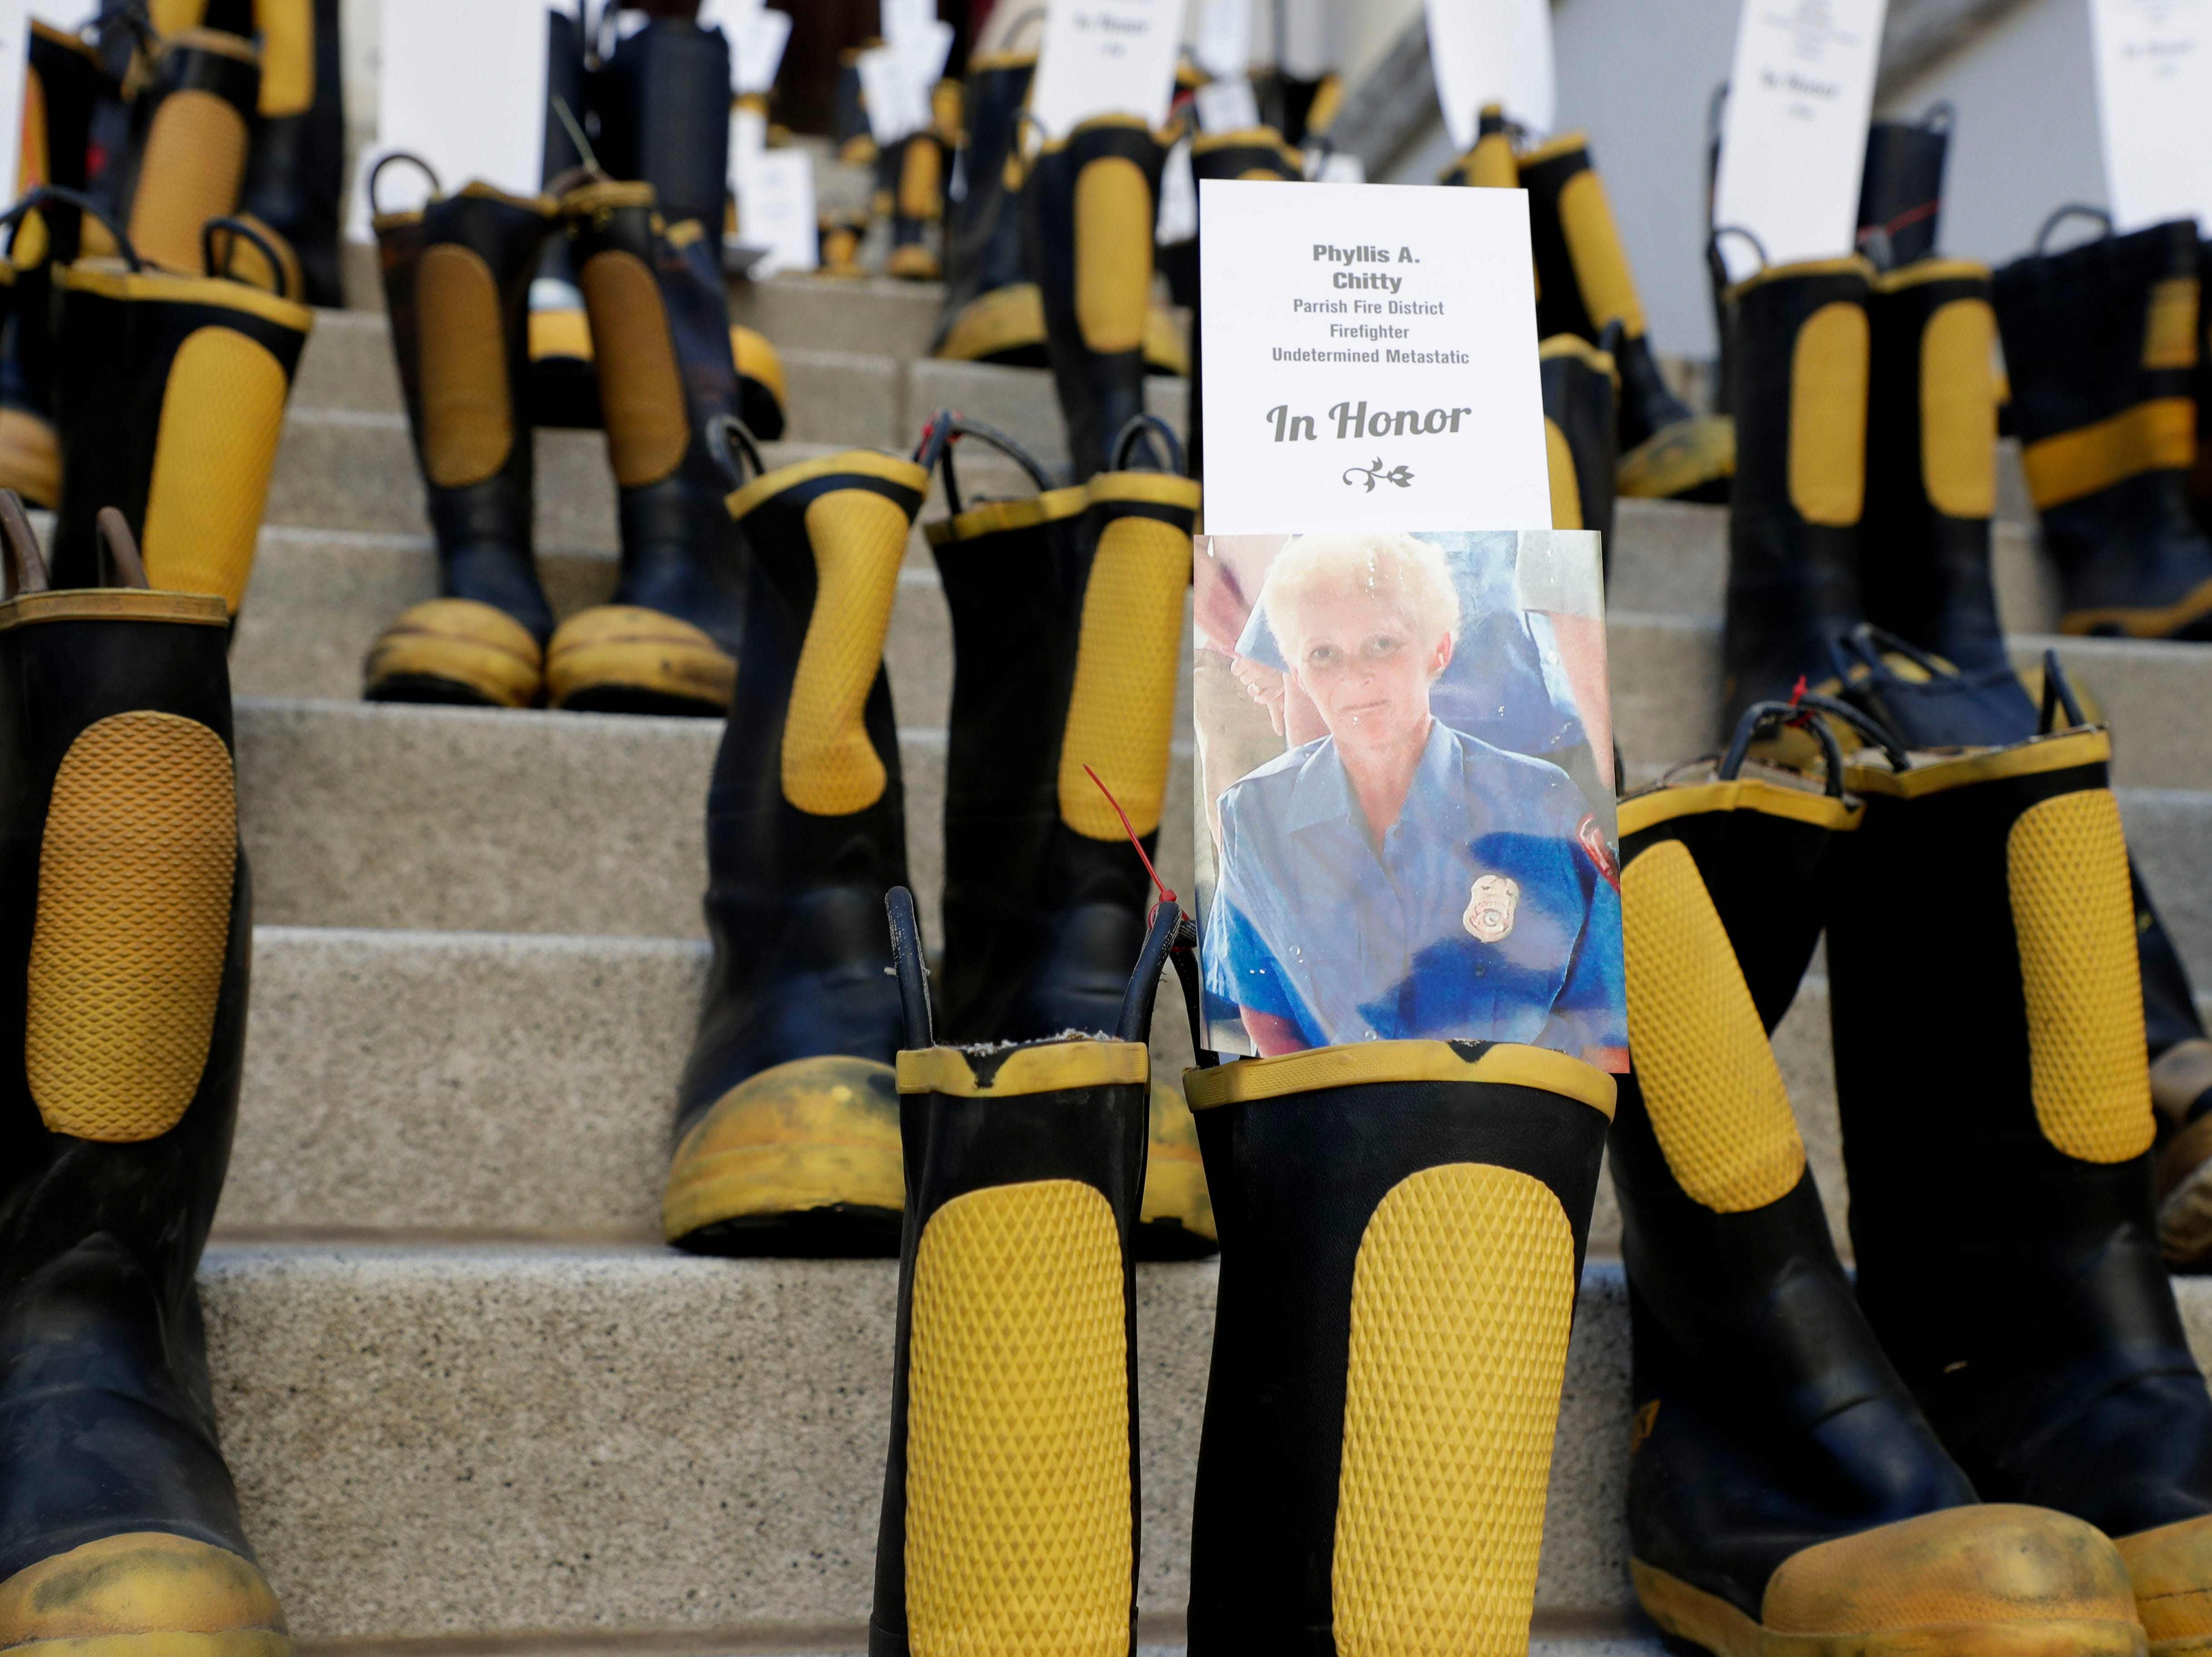 A pair of boots honoring Phyllis Chitty, a former firefighter with the Parish Fire District who battled undetermined metastatic cancer. Firefighters and their families from around the state create a display at the Capitol of 500 pairs of boots in honor of firefighters who lost their battle or are battling with cancer caused from smoke inhalation and carcinogens Thursday, March 7, 2019. The state of Florida is one of five states in the country that does not have a bill acknowledging cancer is a job-related illness.